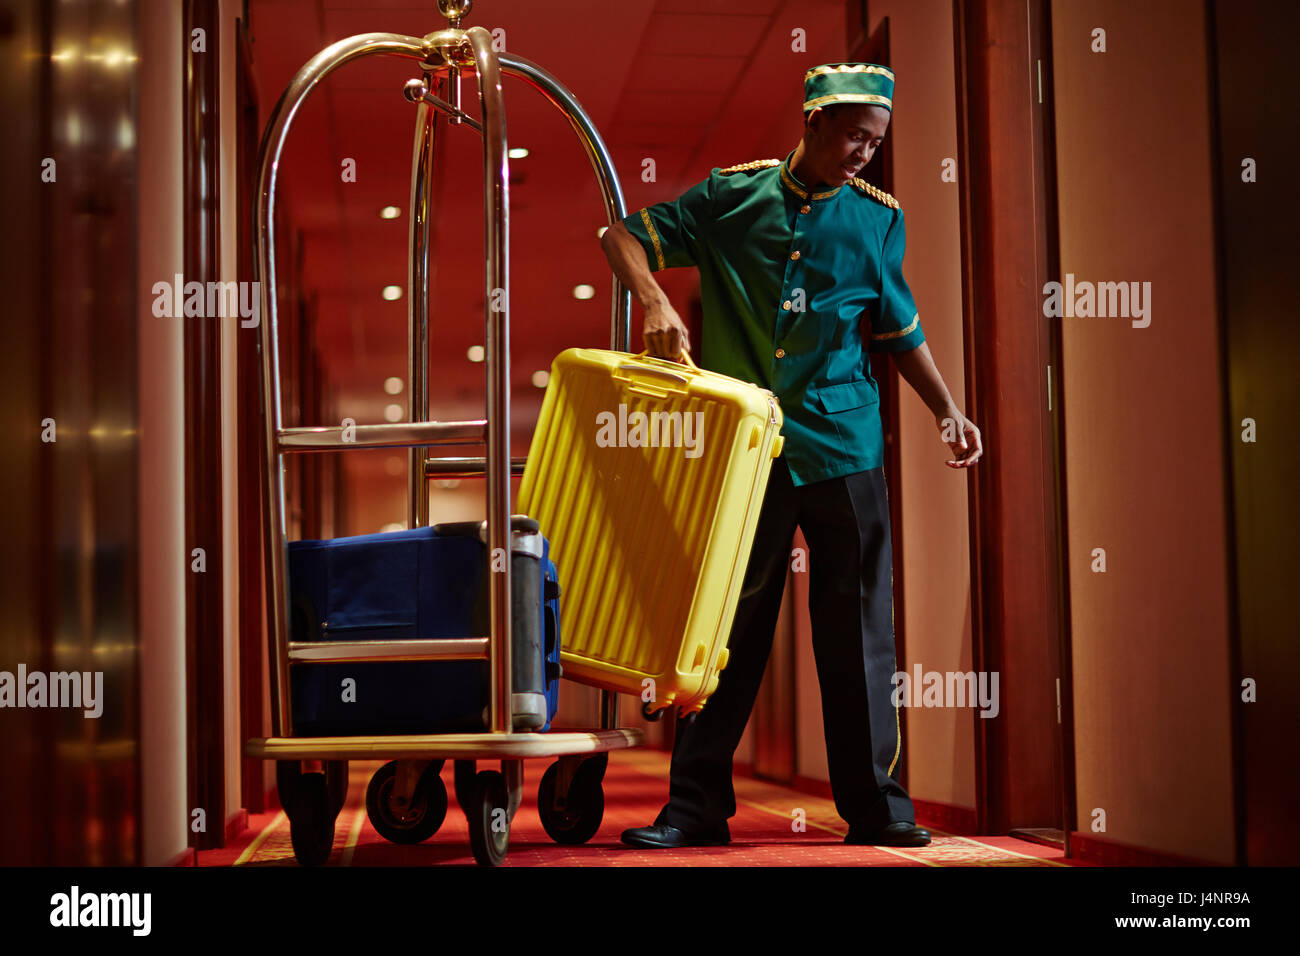 Portrait of African bellboy with luggage cart in hotel hallway, bringing bags to guest rooms - Stock Image